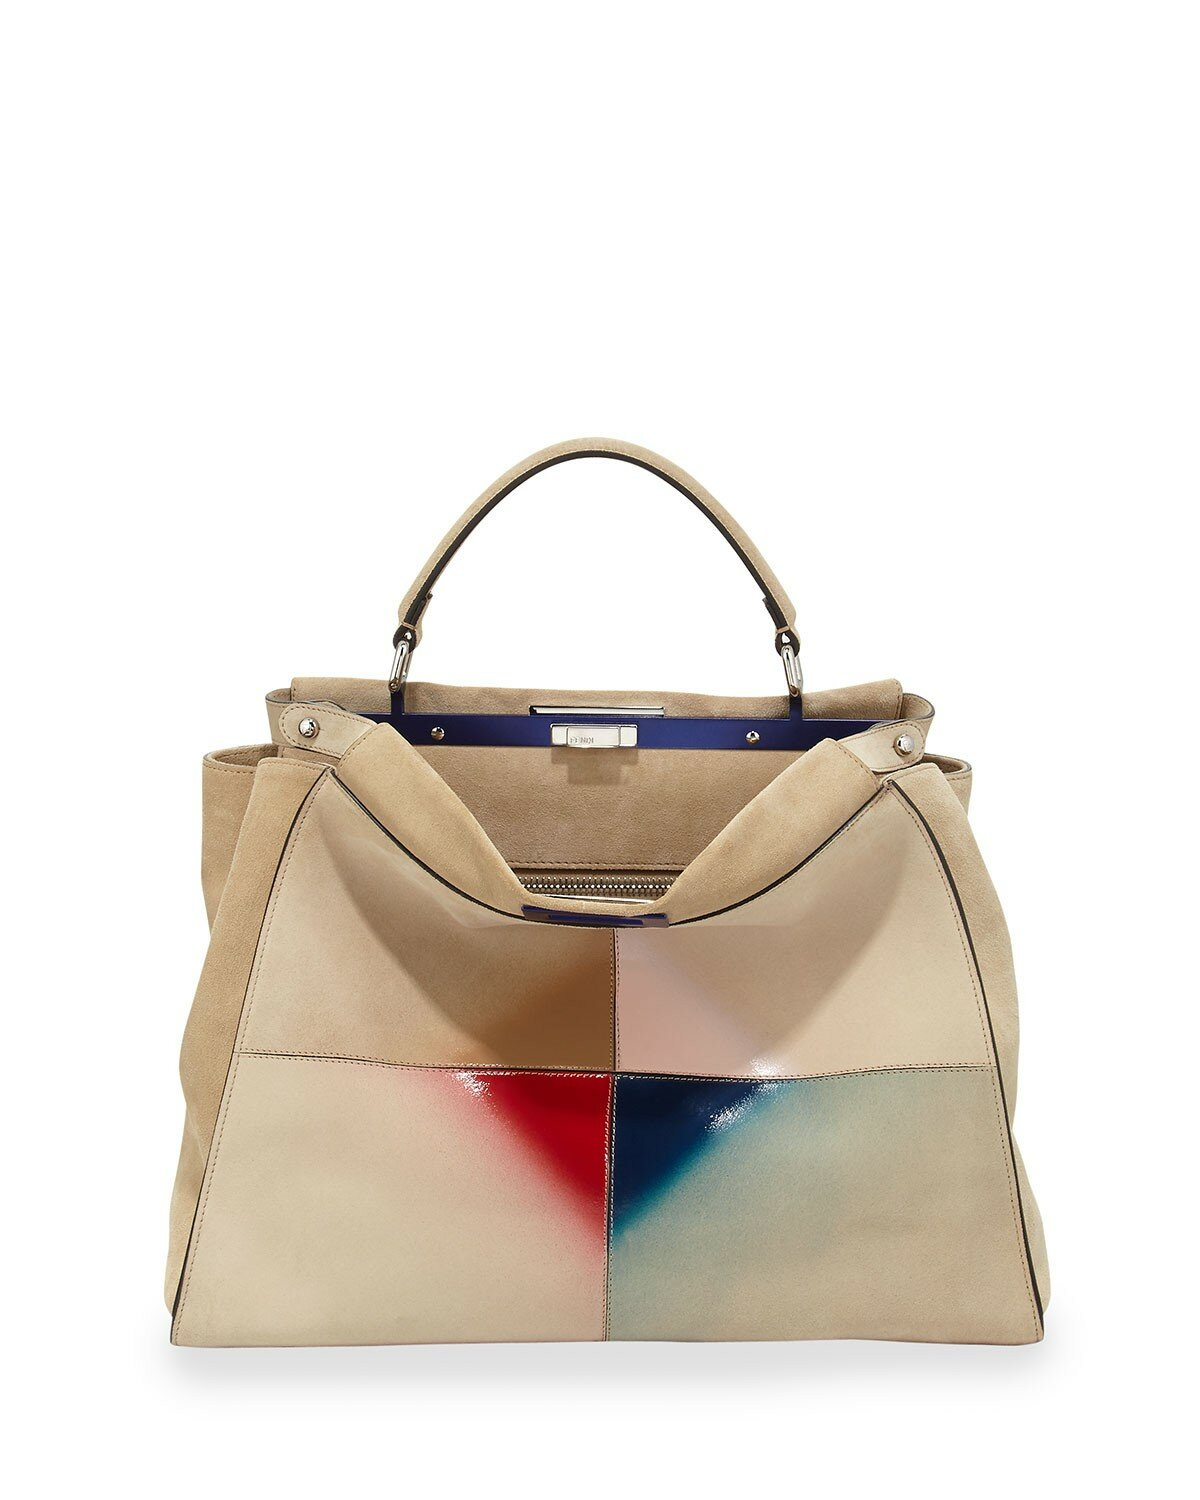 Fendi peekaboo large patent patchwork tote bag nude multi,accessories usa,discount sale usa